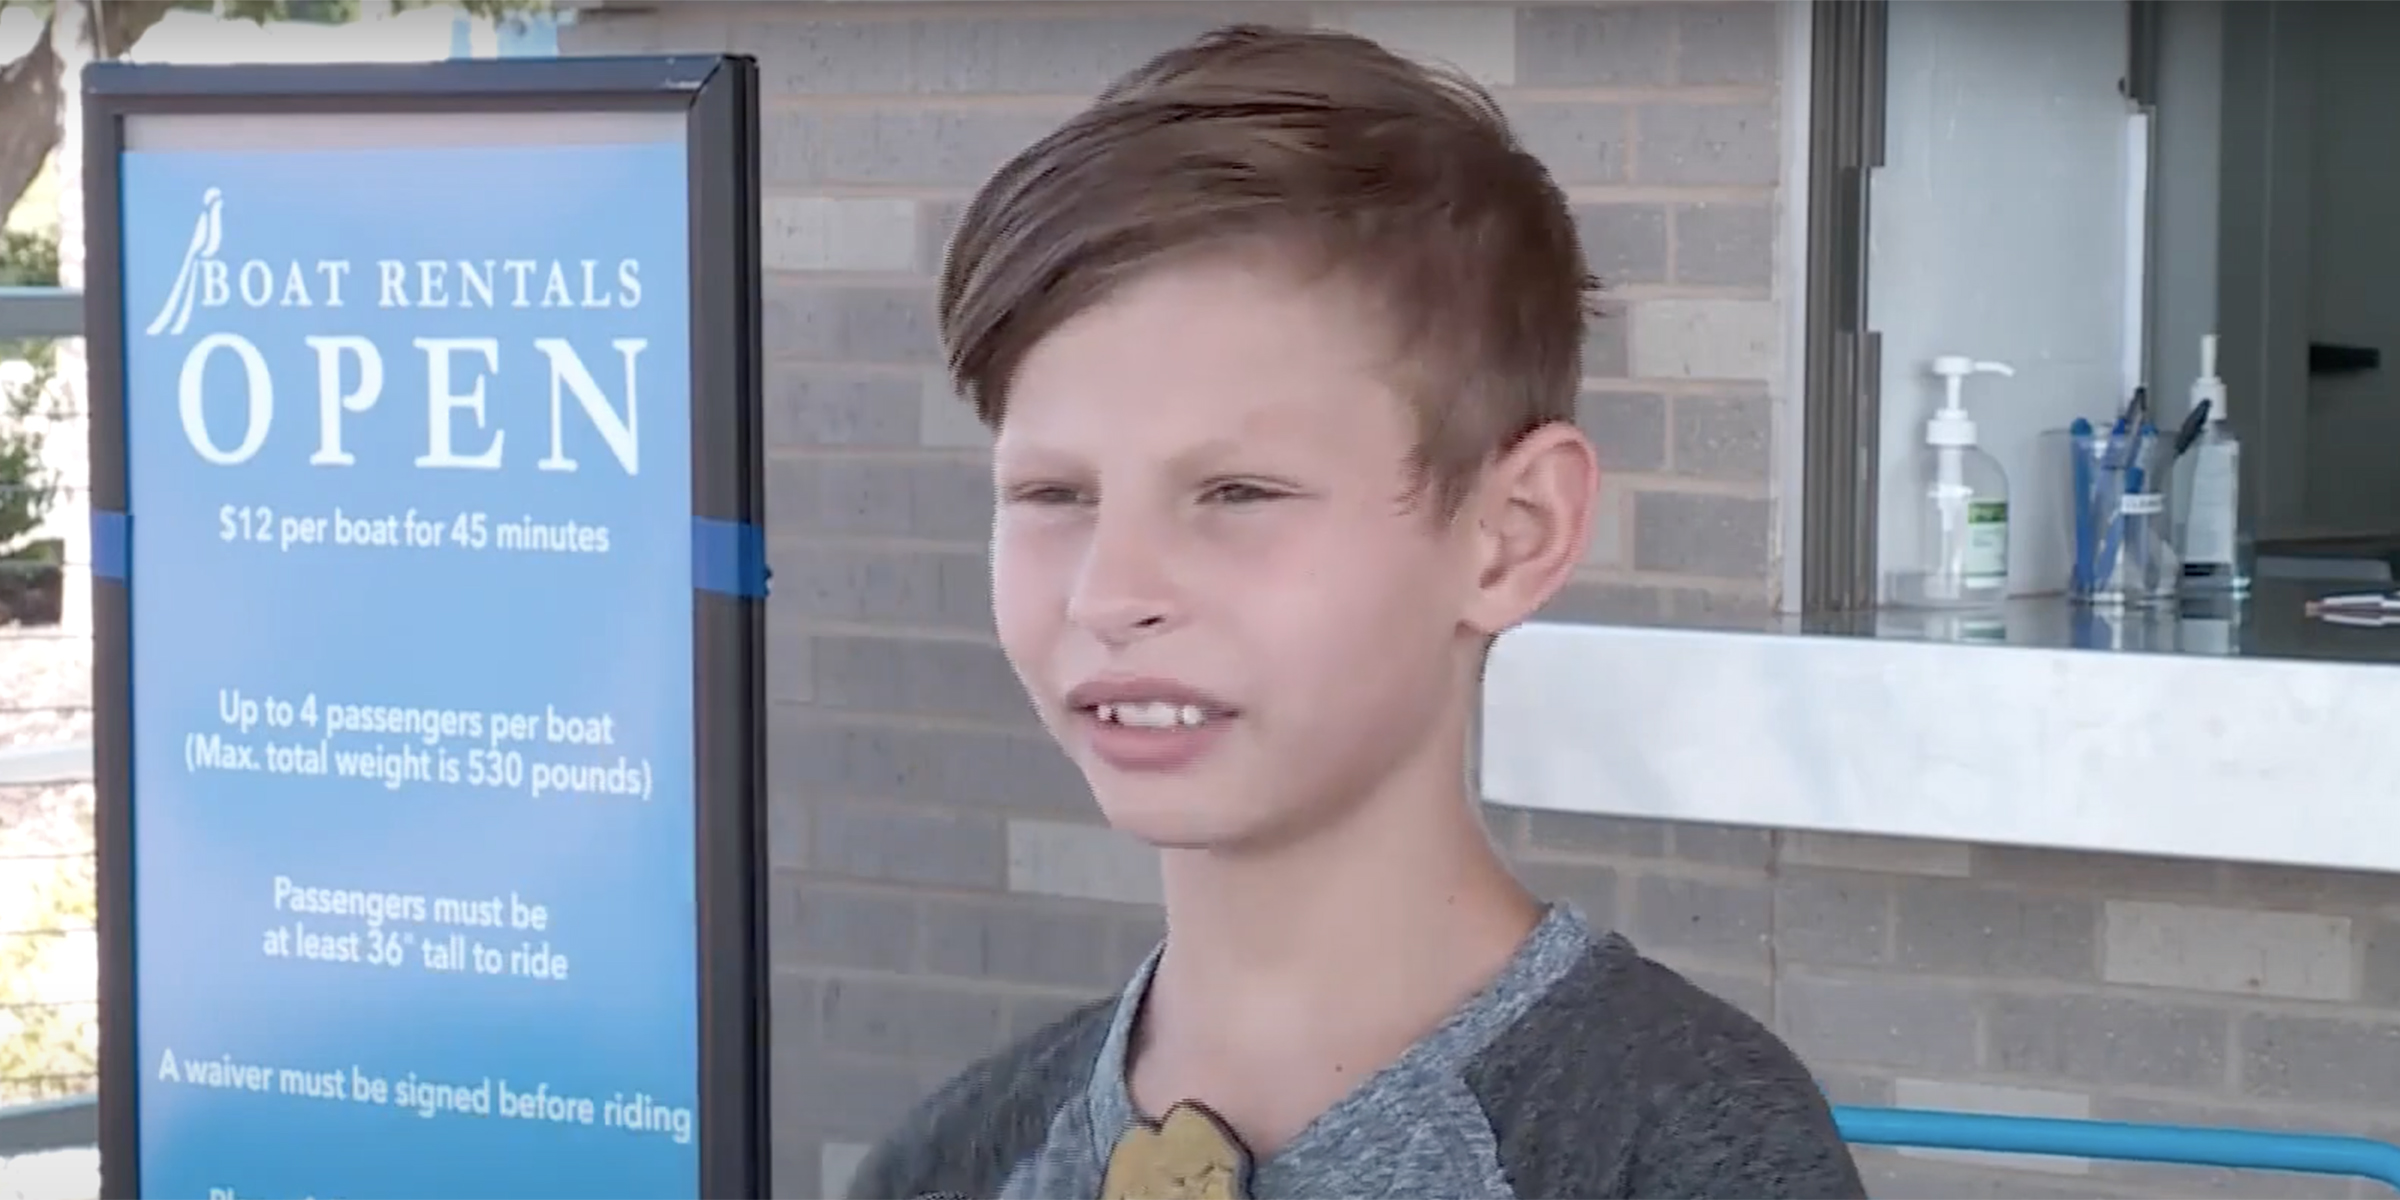 I hope one of y'all pick me': Thousands apply to adopt 9-year-old boy after  viral video